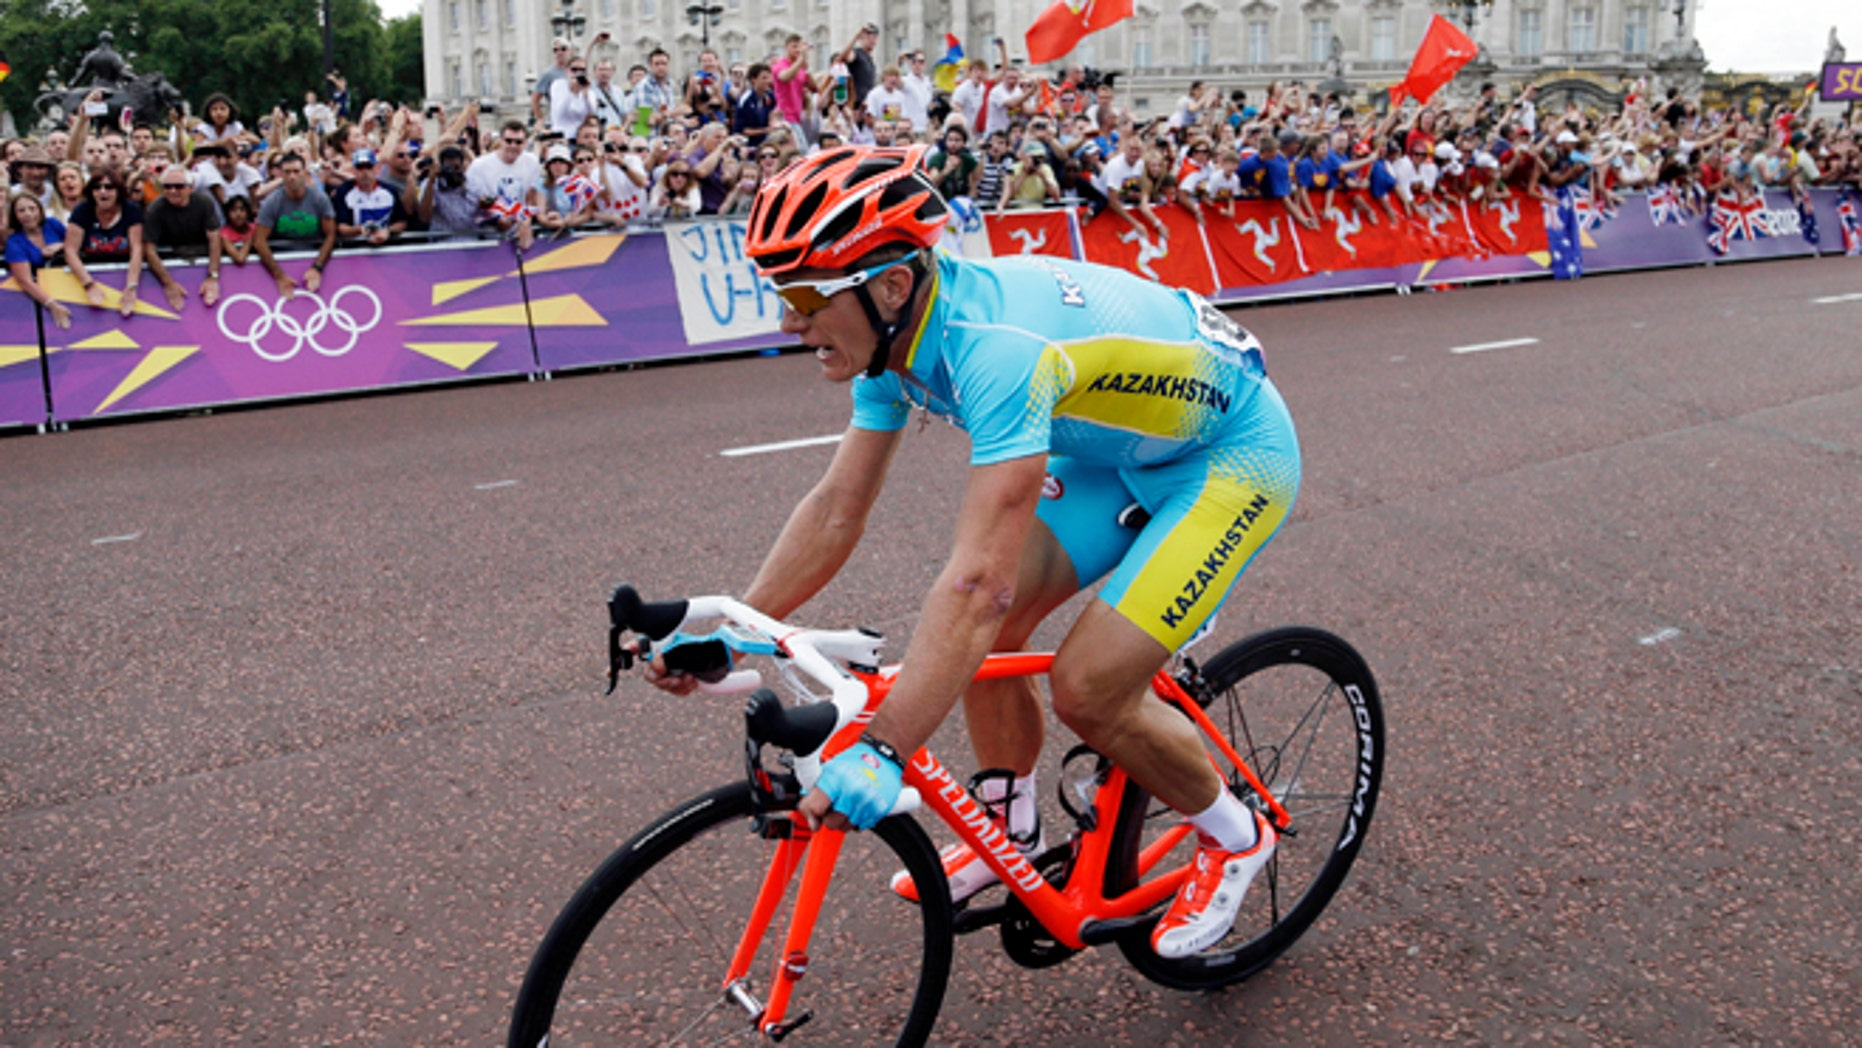 July 28, 2012: Kazakhstan's Alexandr Vinokourov pedals past Buckingham Palace on his way to win the Men's Road Cycling race at the 2012 Summer Olympics in London.